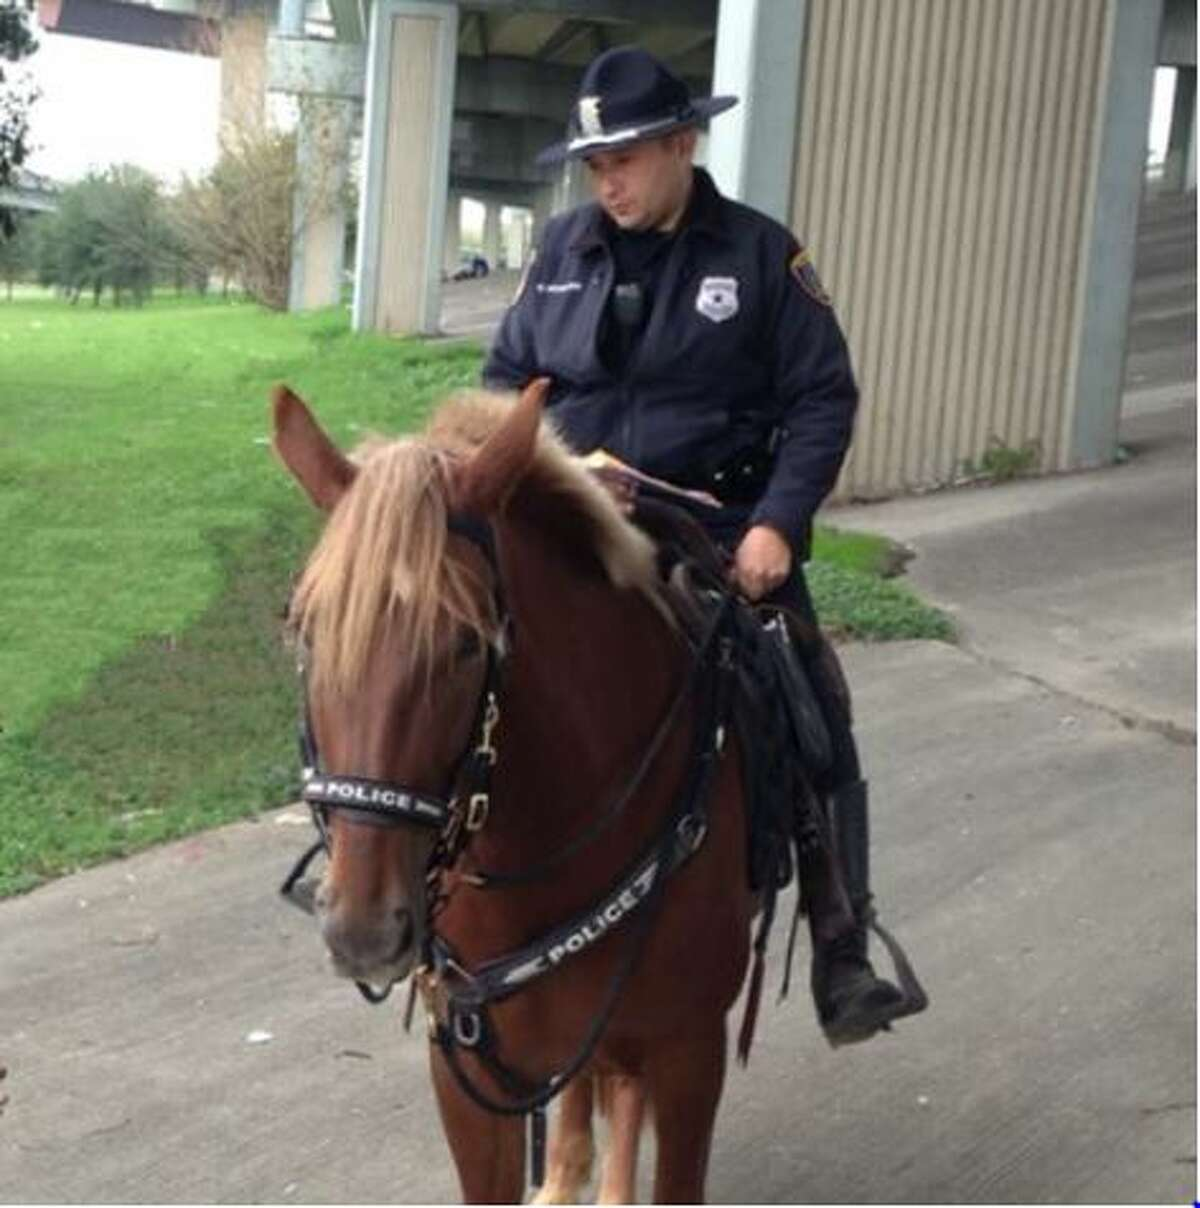 Charlotte, a 6-year-old Tennessee Walker and member of the Houston Police Department's mounted patrol, died in the line of duty when she was struck by a moving vehicle in downtown Houston, Dec. 3, 2015.